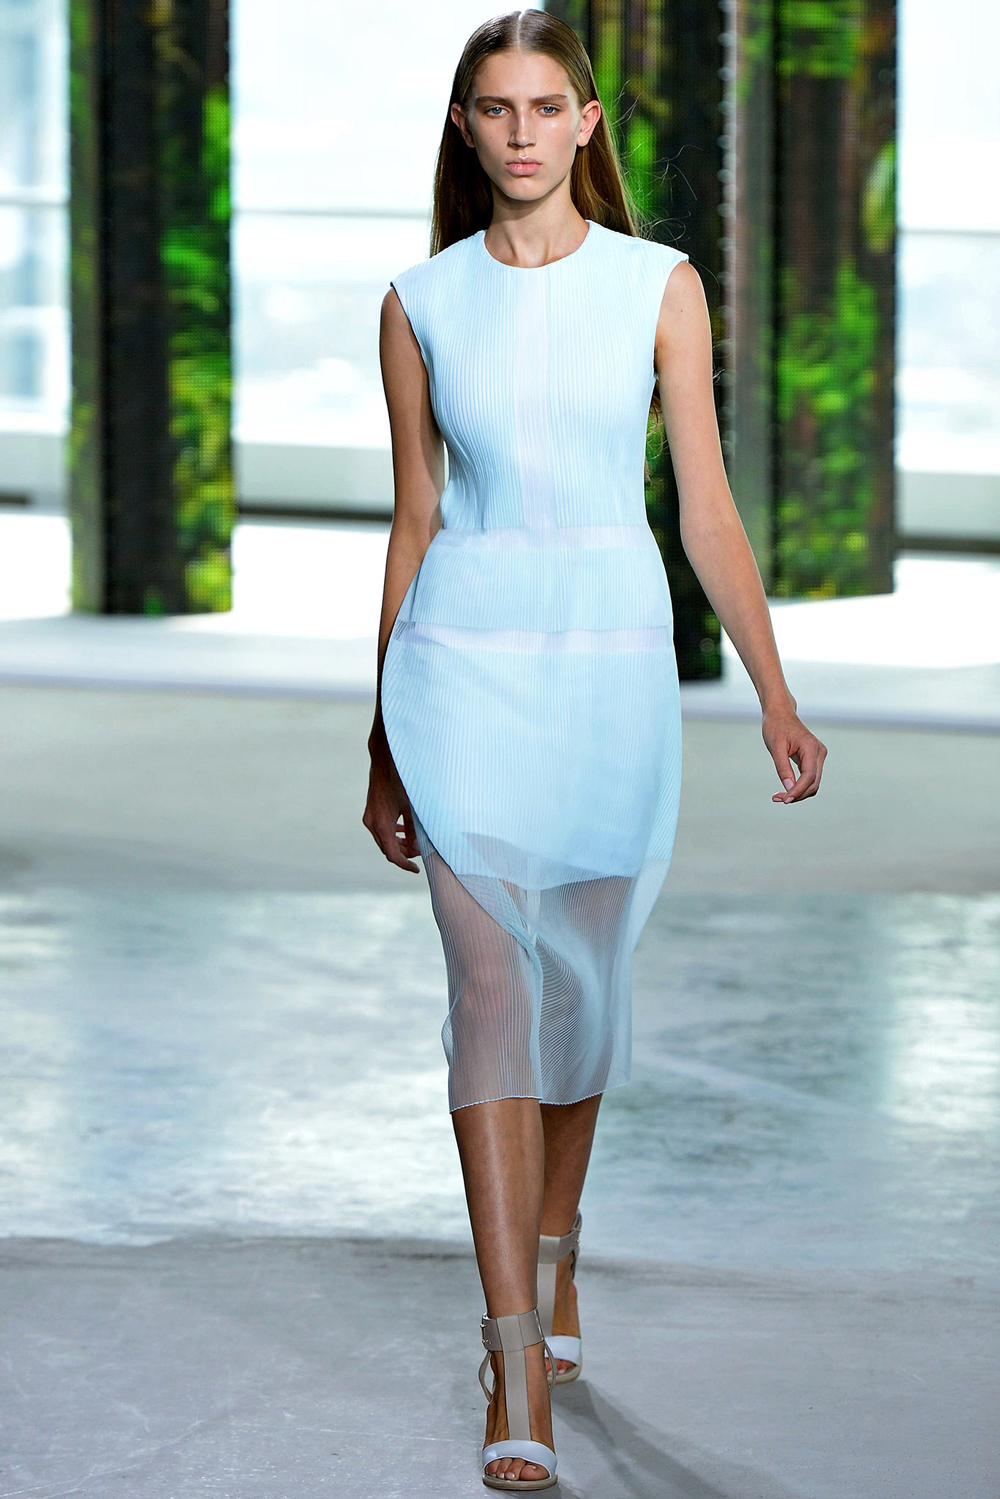 Pantone Colour Report Spring 2015 trends / aquamarine / how to wear aquamarine / outfit ideas / fashion collections S/S 2015 / Hugo Boss Spring 2015 / via fashioned by love british fashion blog